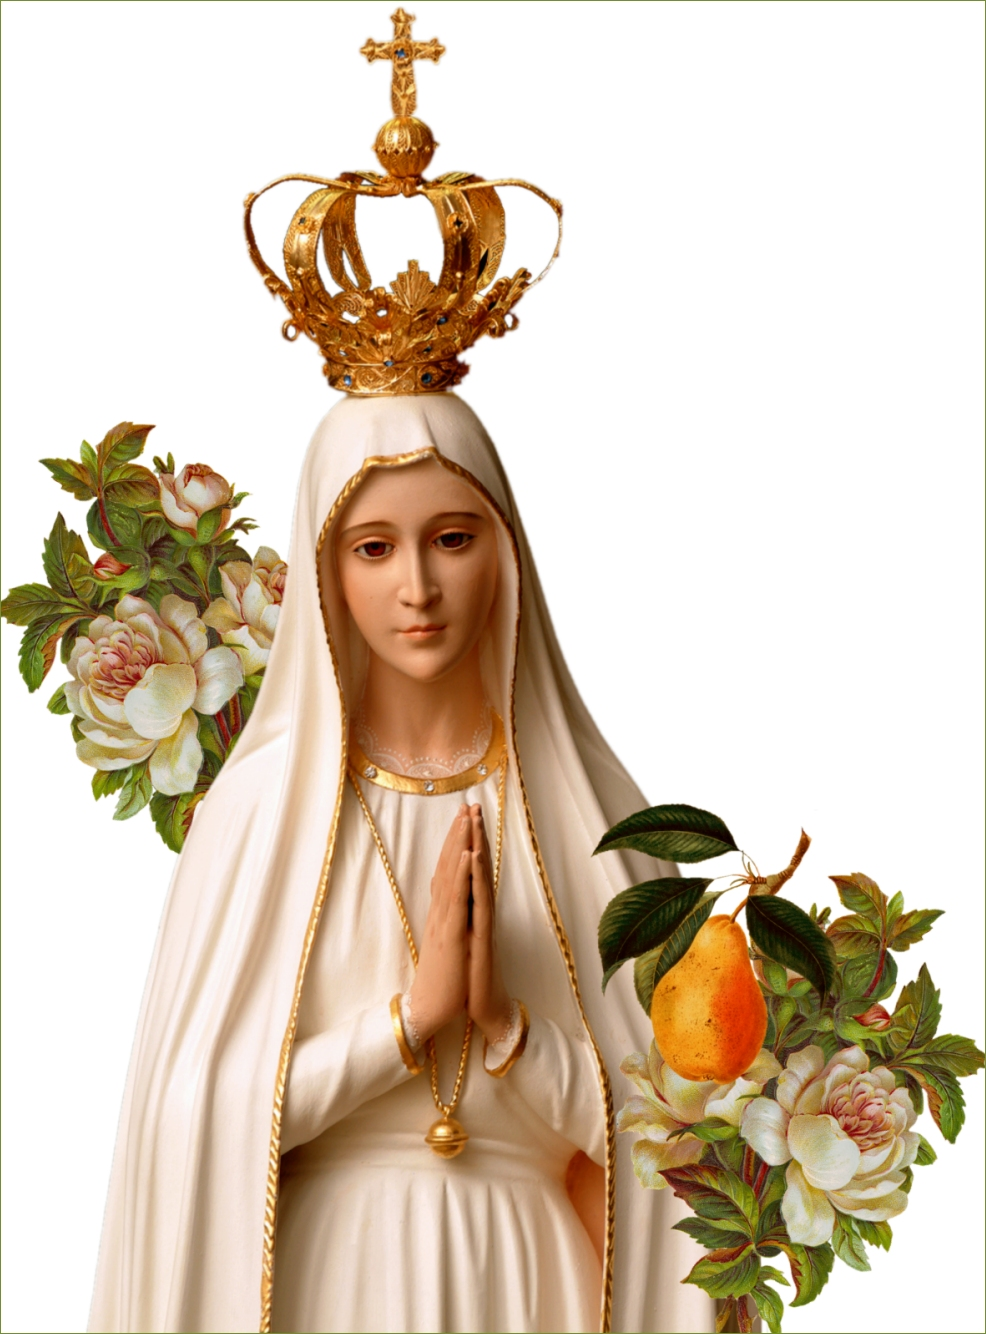 OUR LADY OF FATIMA WITH PEAR AND FLOWERS